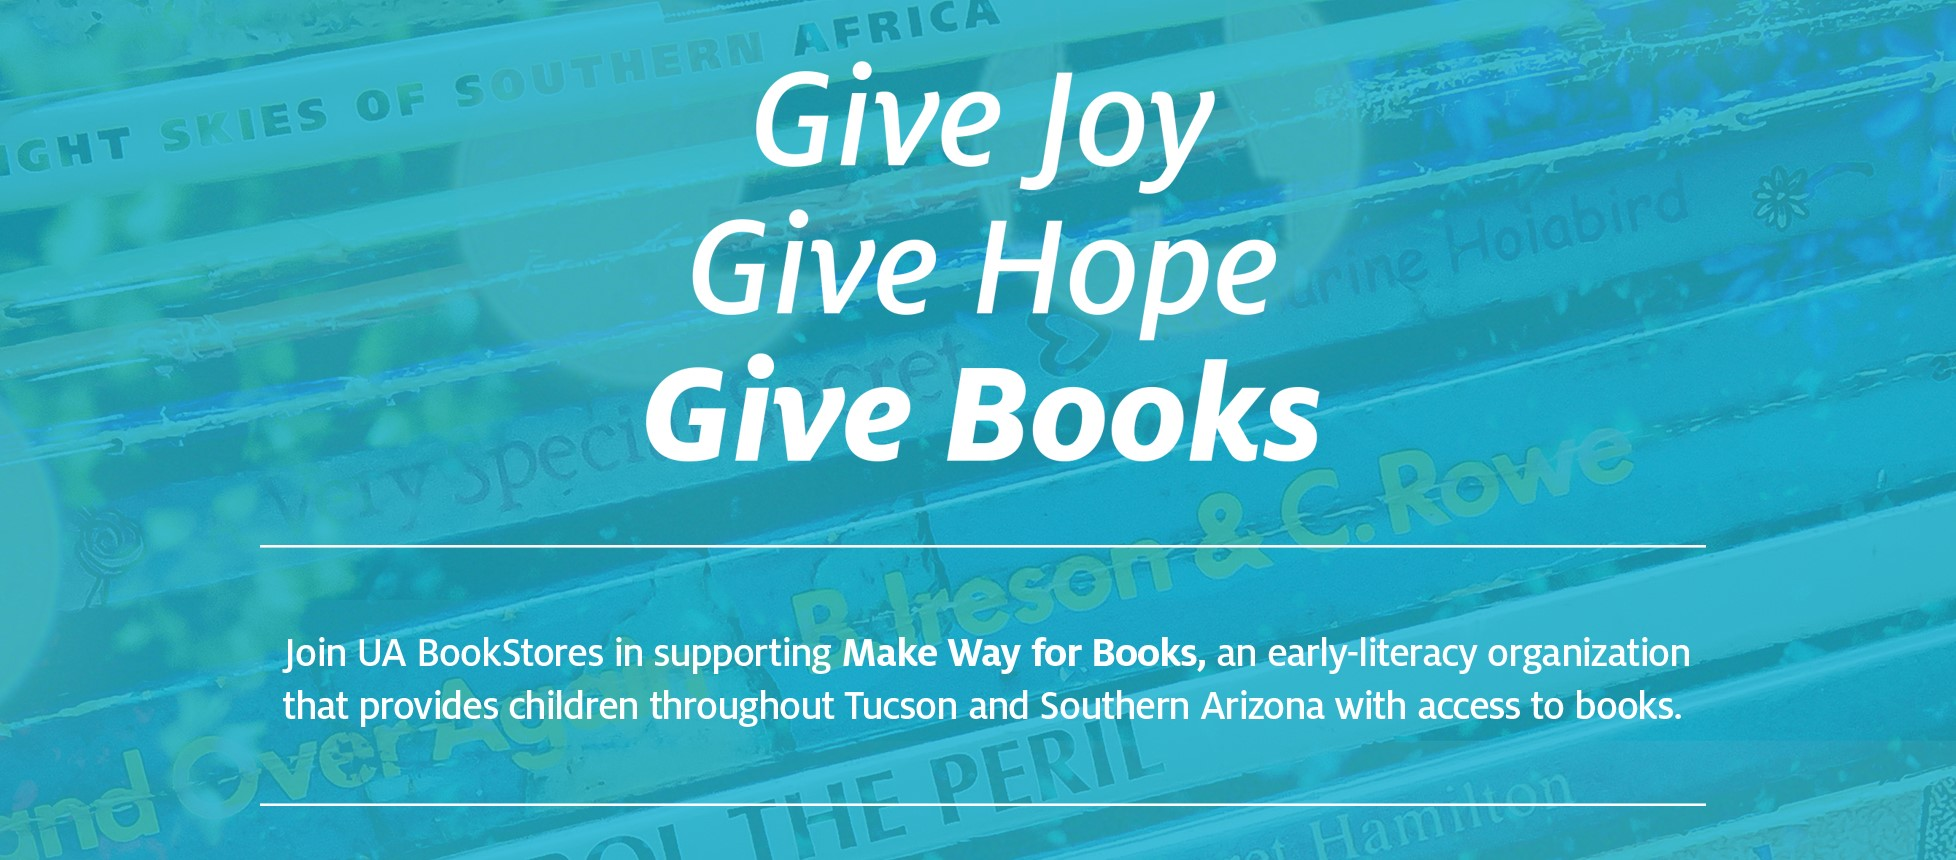 Give Joy. Give Hope. Give Books »